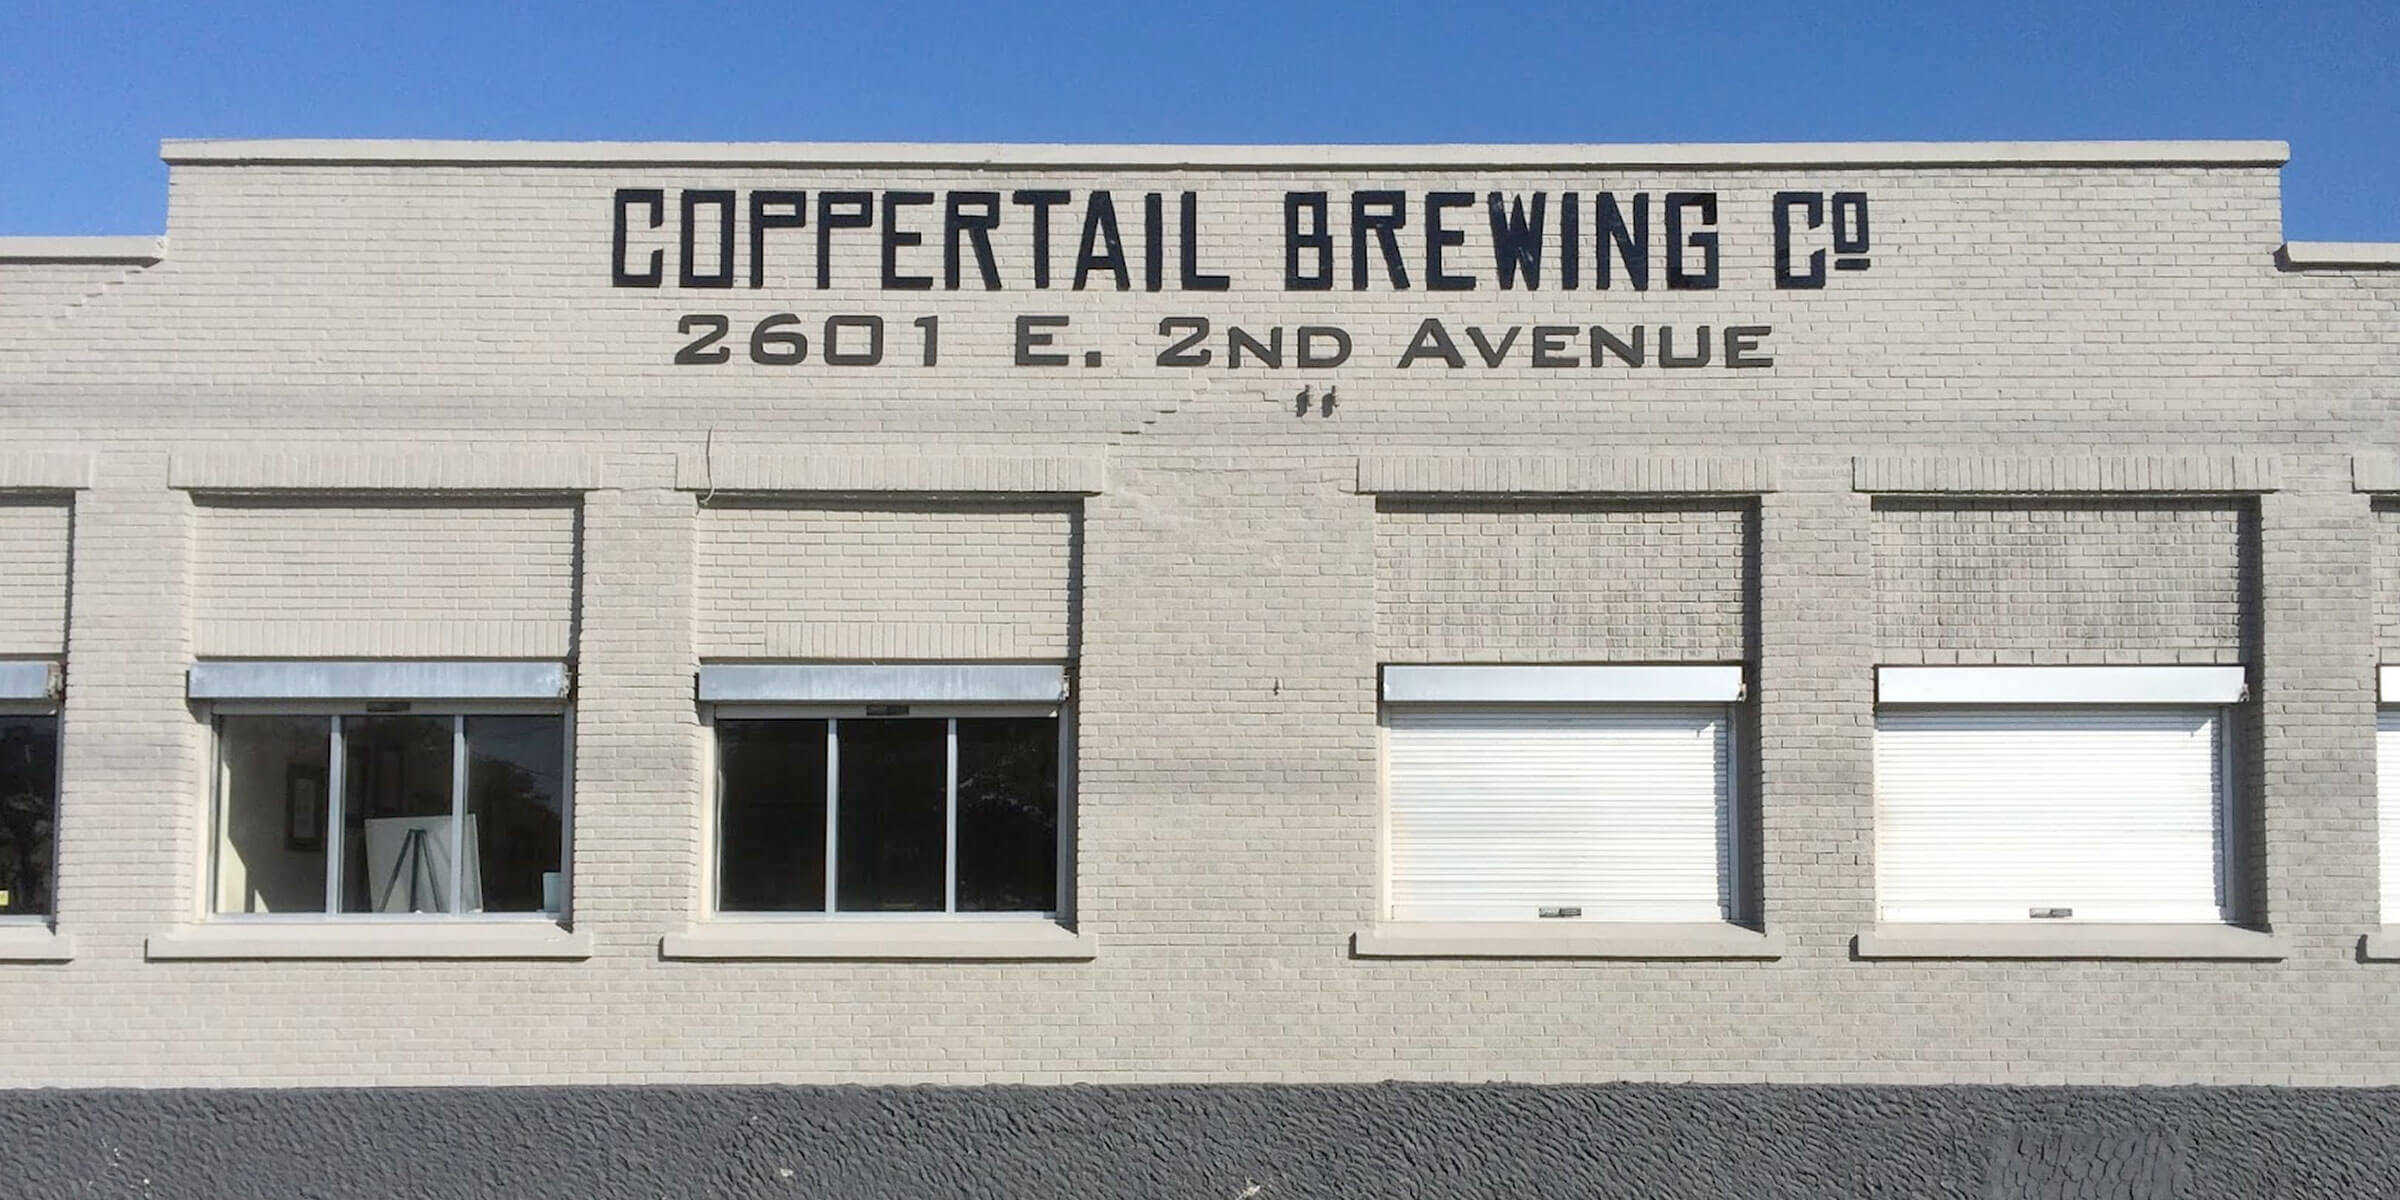 Outside the production brewery at Coppertail Brewing Co. in Tampa, Florida